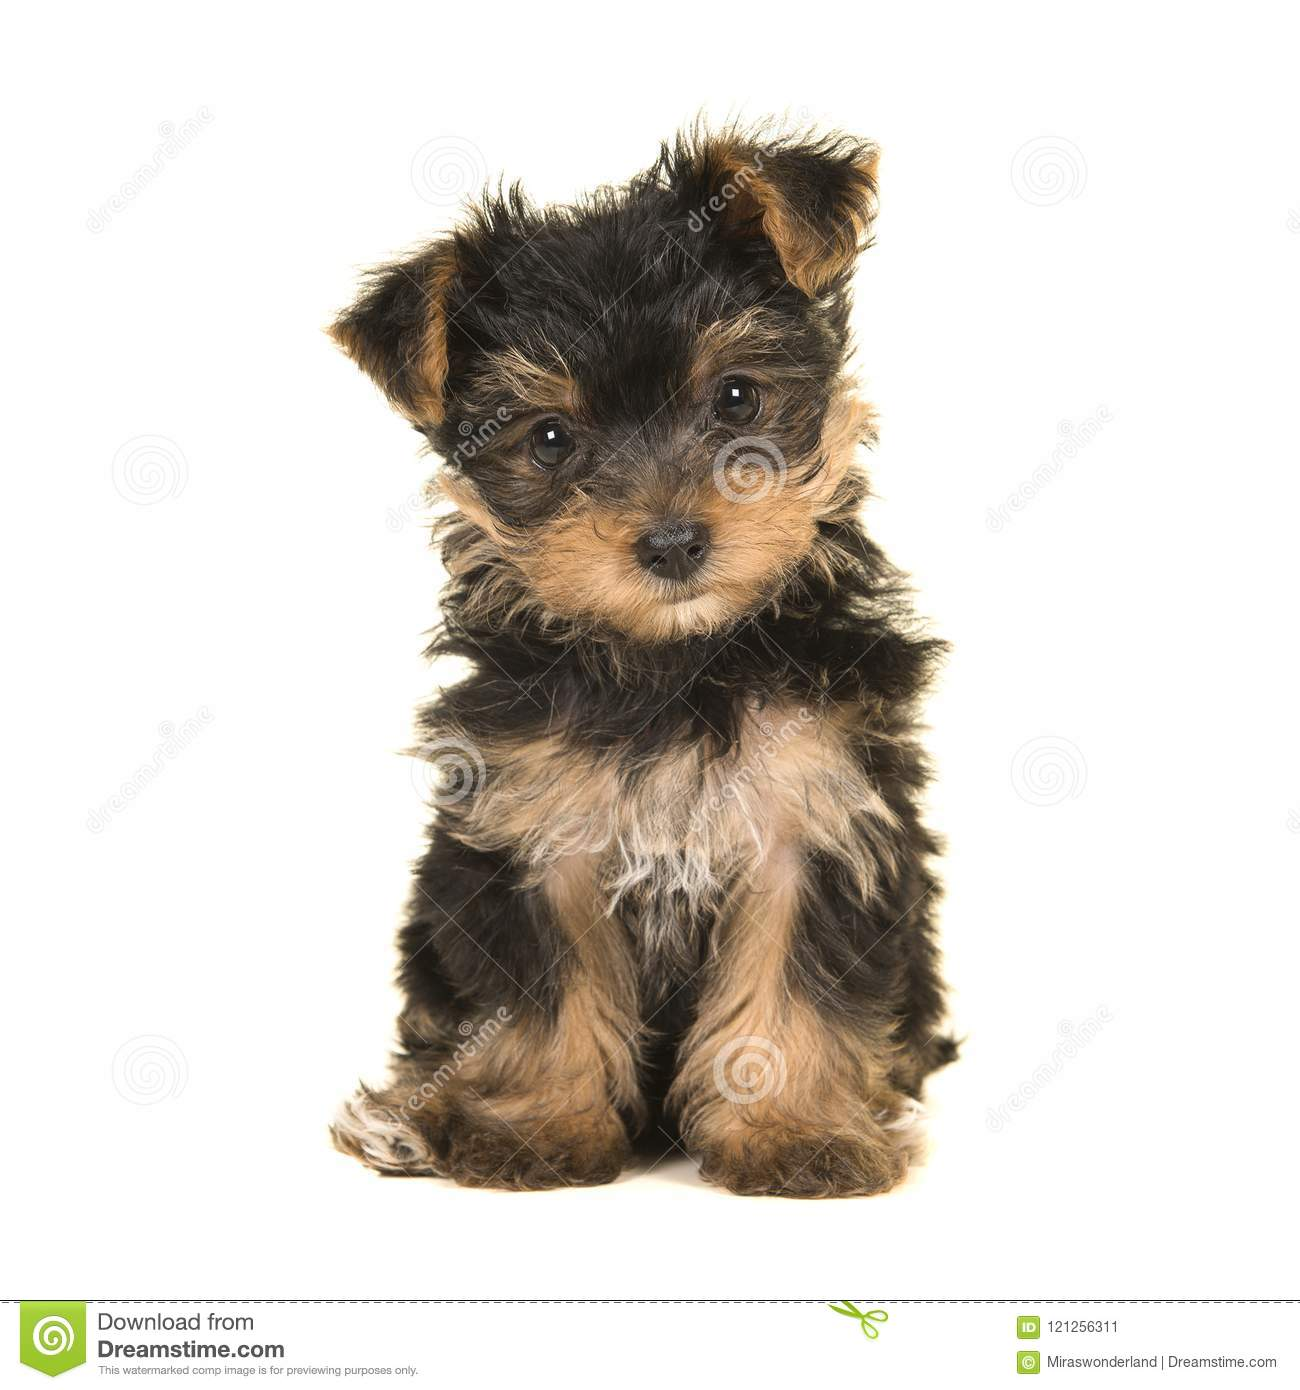 Cute Sitting Yorkshire Terrier Yorkie Puppy Looking At The Came Stock Image Image Of Animal Front 121256311